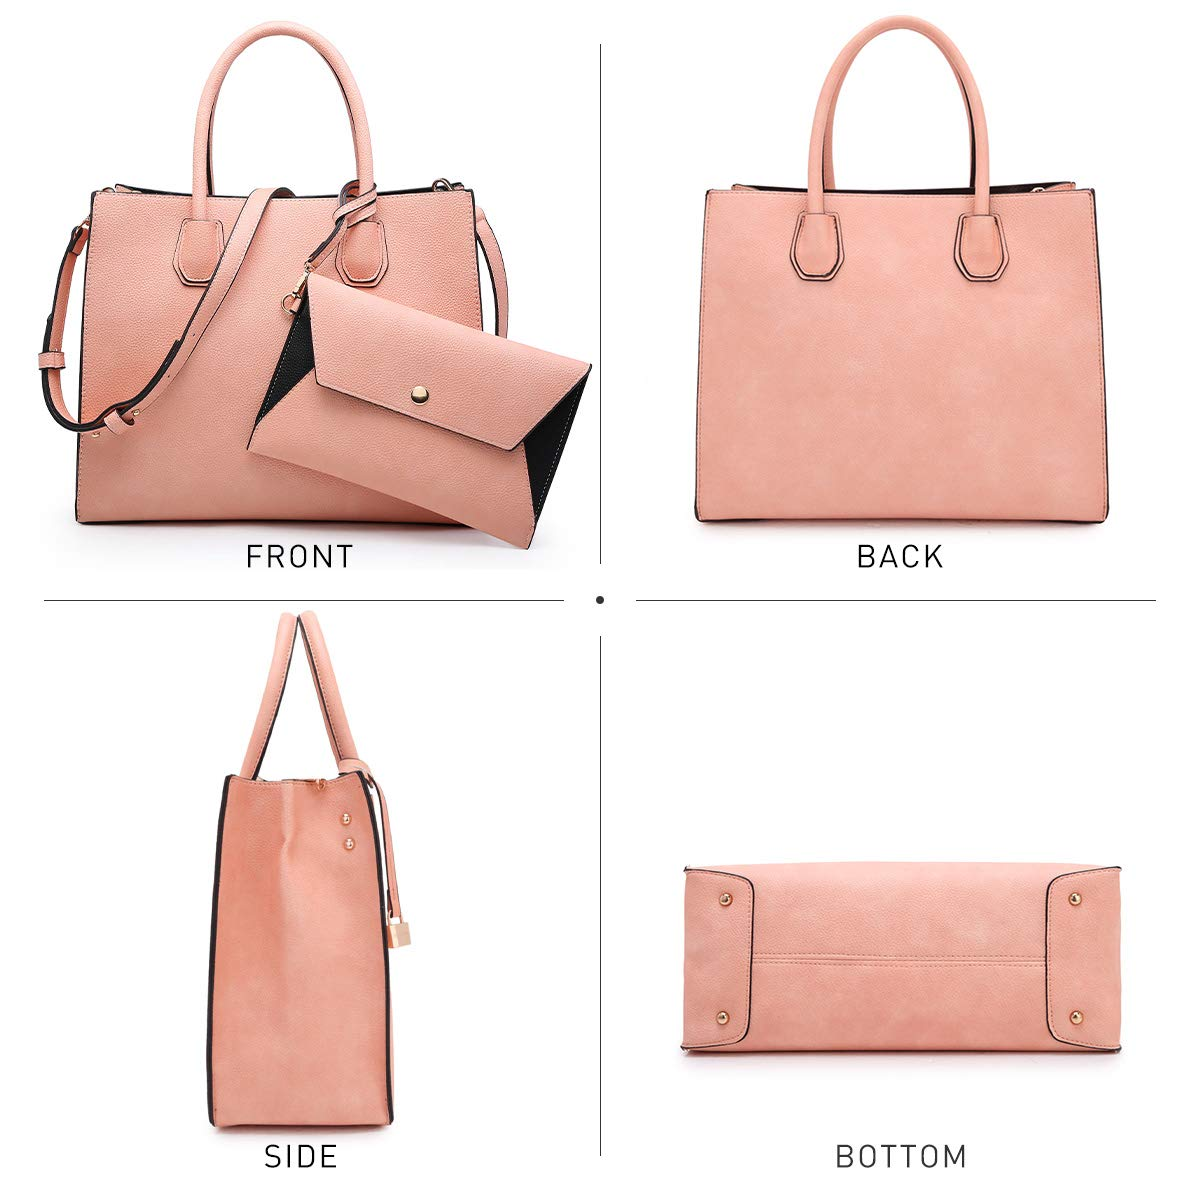 Dasein Purses and Handbags for Women Satchel Bags Top Handle Shoulder Bag Work Tote Bag With Matching Wallet